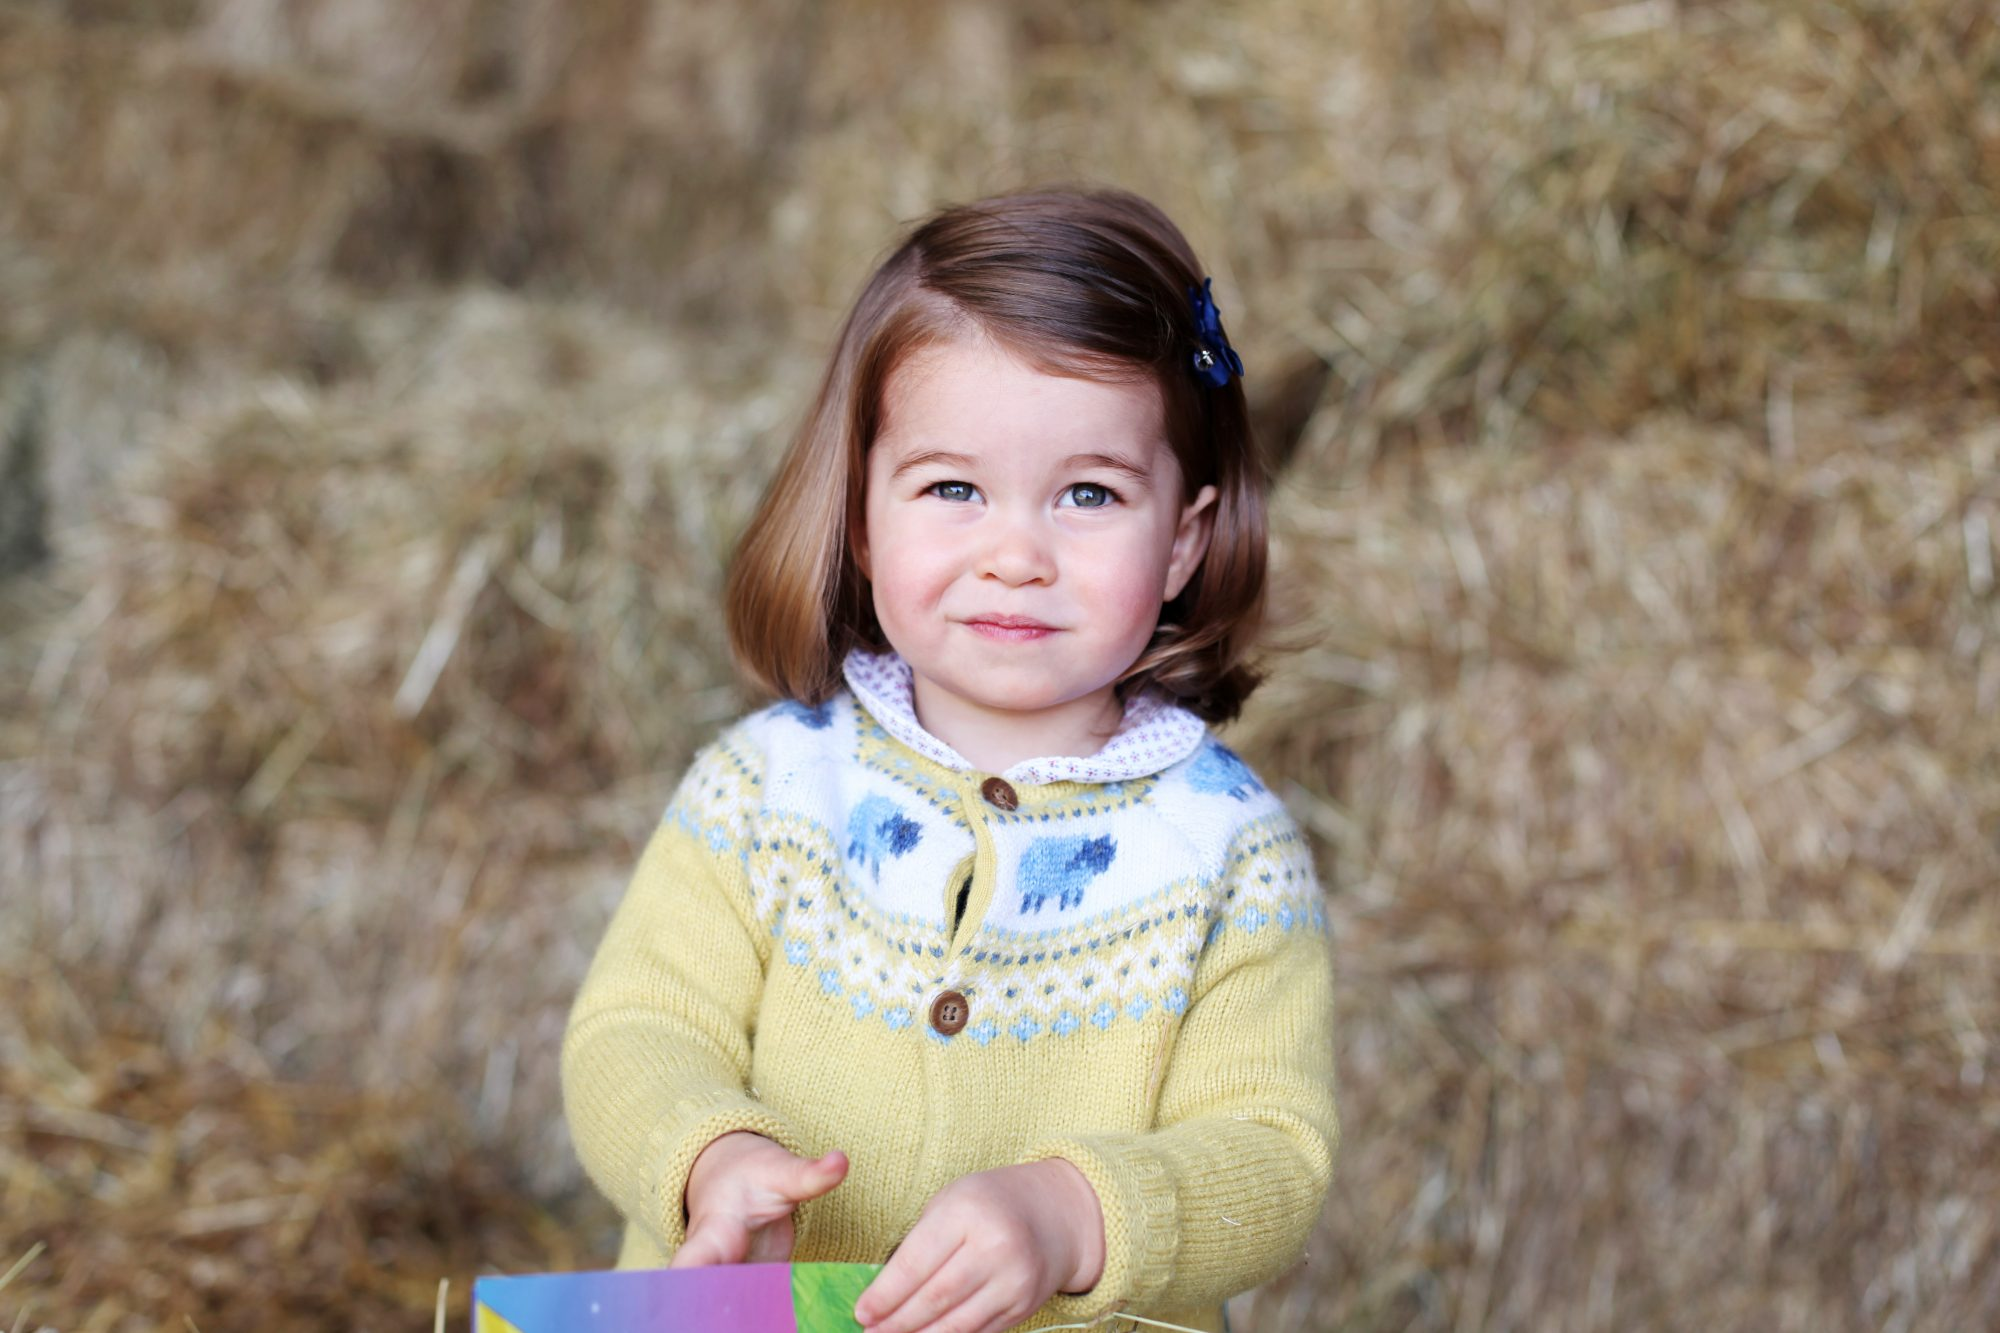 Princess Charlotte Full Name